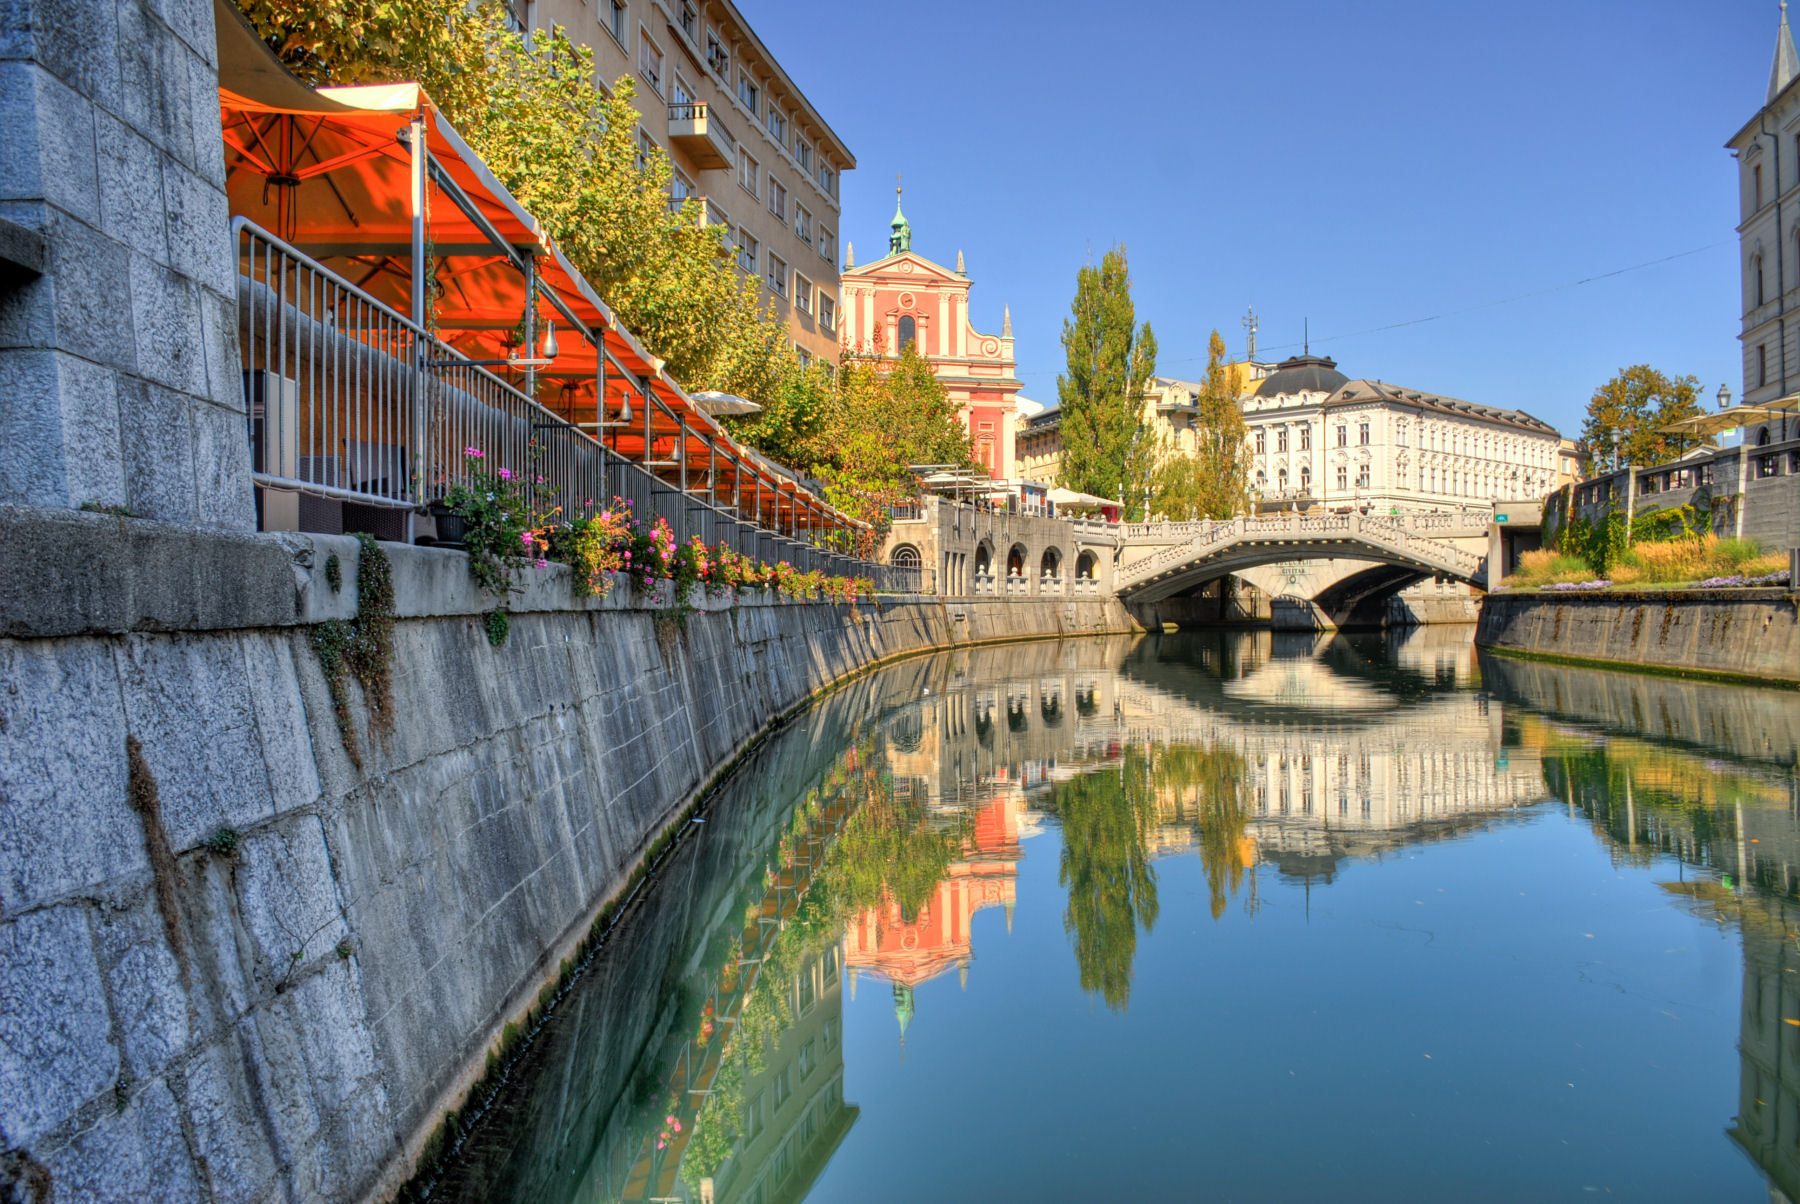 Triple bridge is the center of the Ljubljana old historic city center